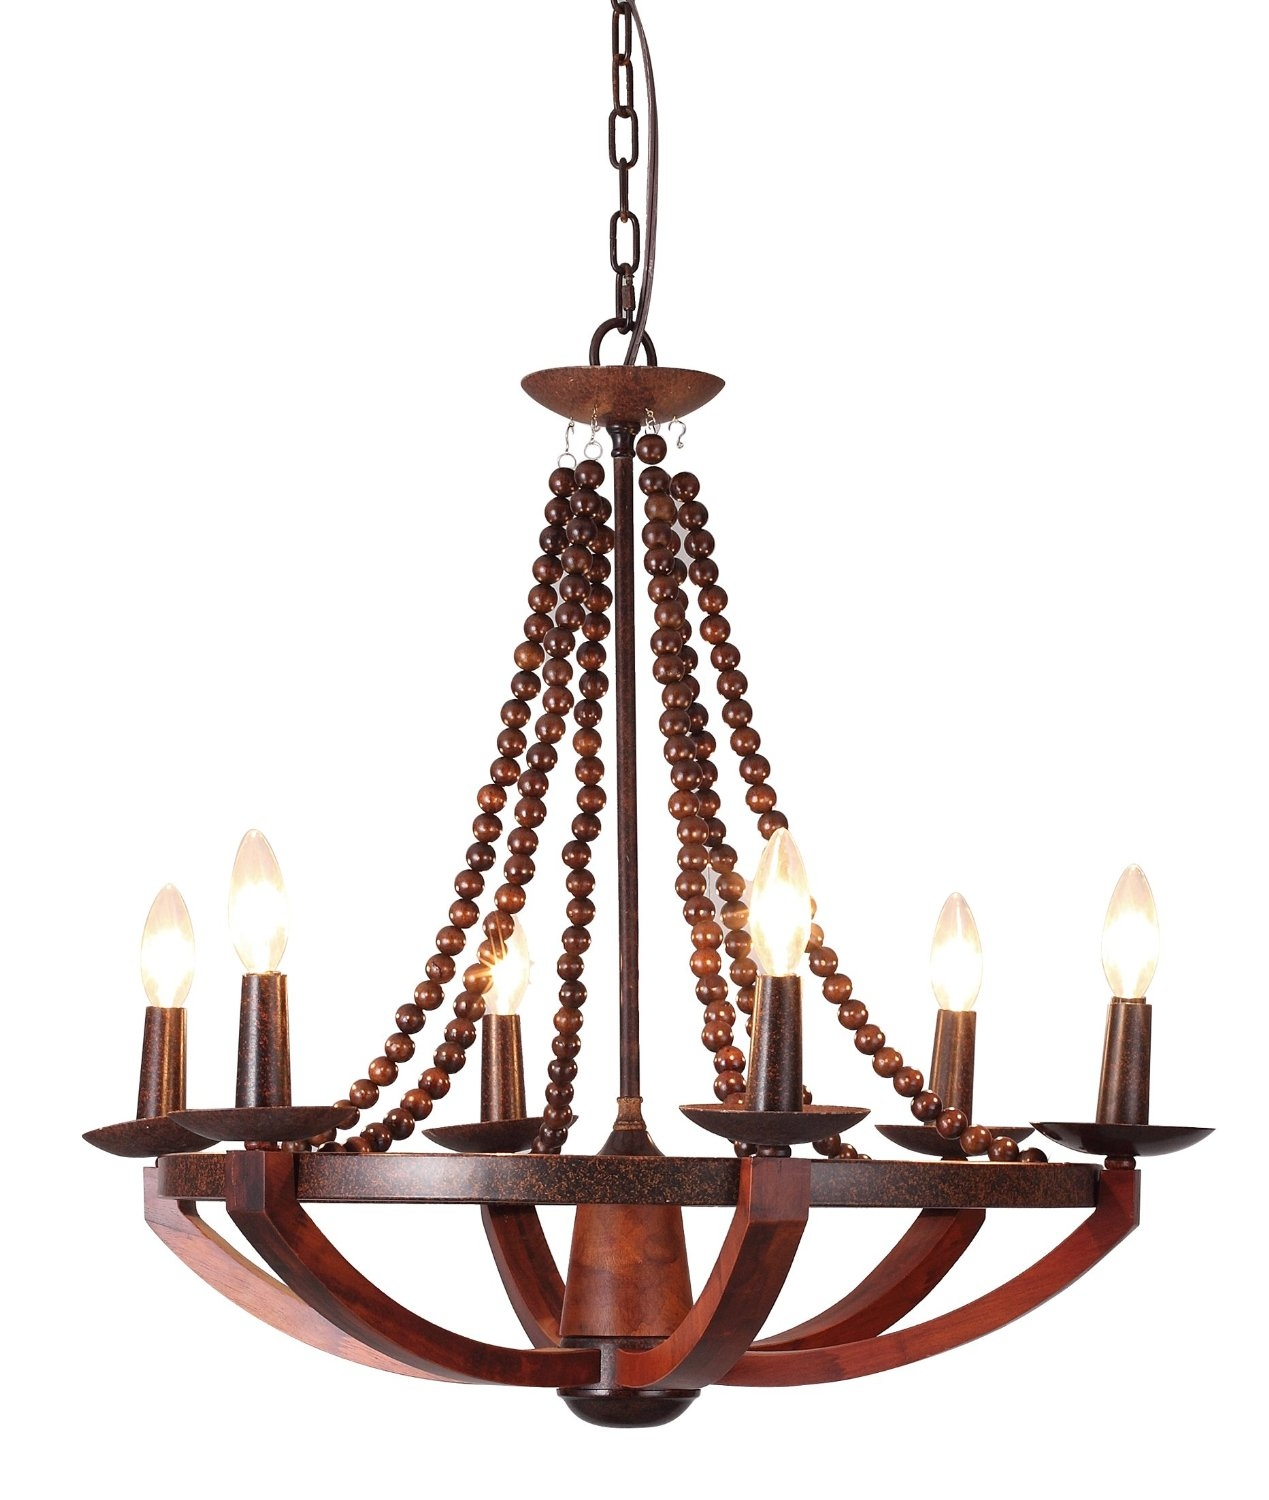 12 Best Rustic Wood And Metal Chandeliers Qosy For Wooden Chandeliers (View 8 of 15)